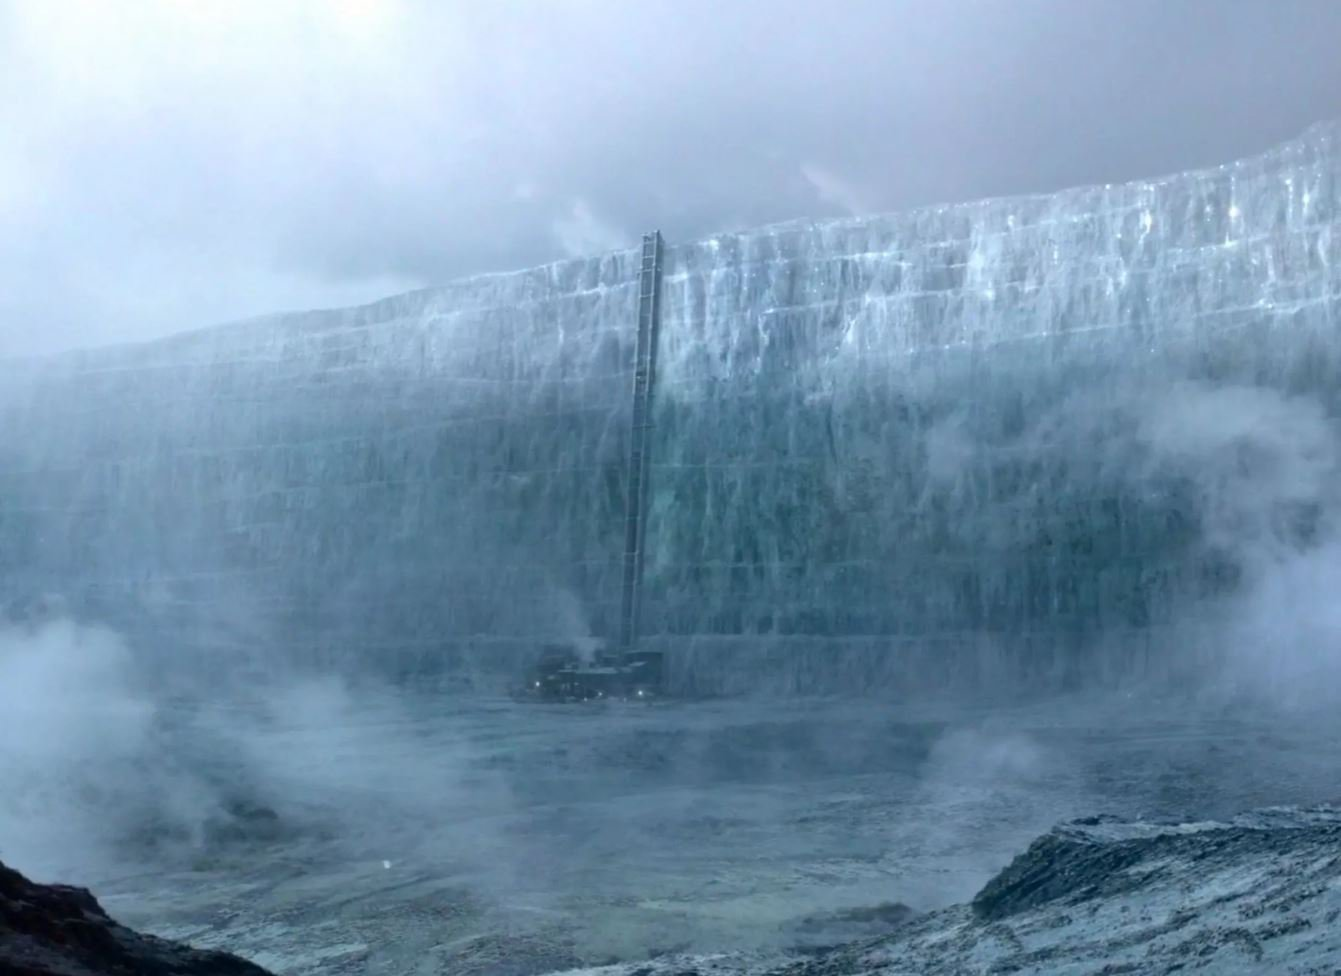 Who built The Wall in Game of Thrones and how long has it been there?